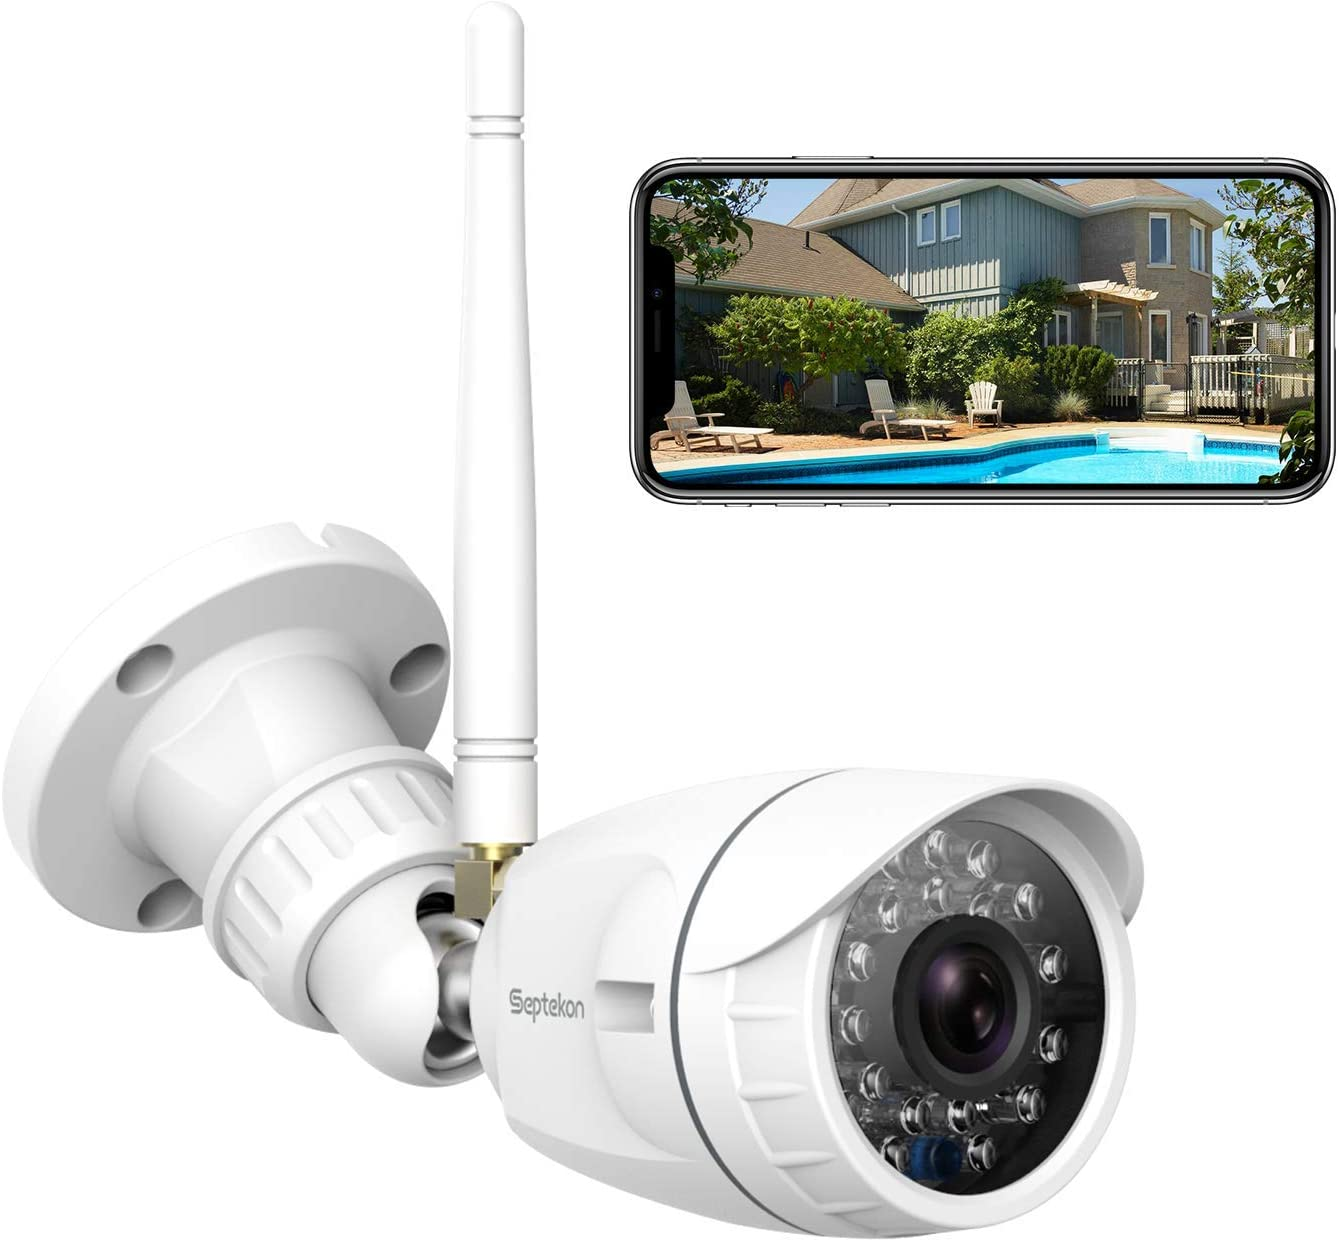 Outdoor Security Camera, Septekon 1080P Home Wireless WiFi Surveillance Camera with IP66 Waterproof, Night Vision, Motion Detection, Remote Access, Compatible with Alexa-S40